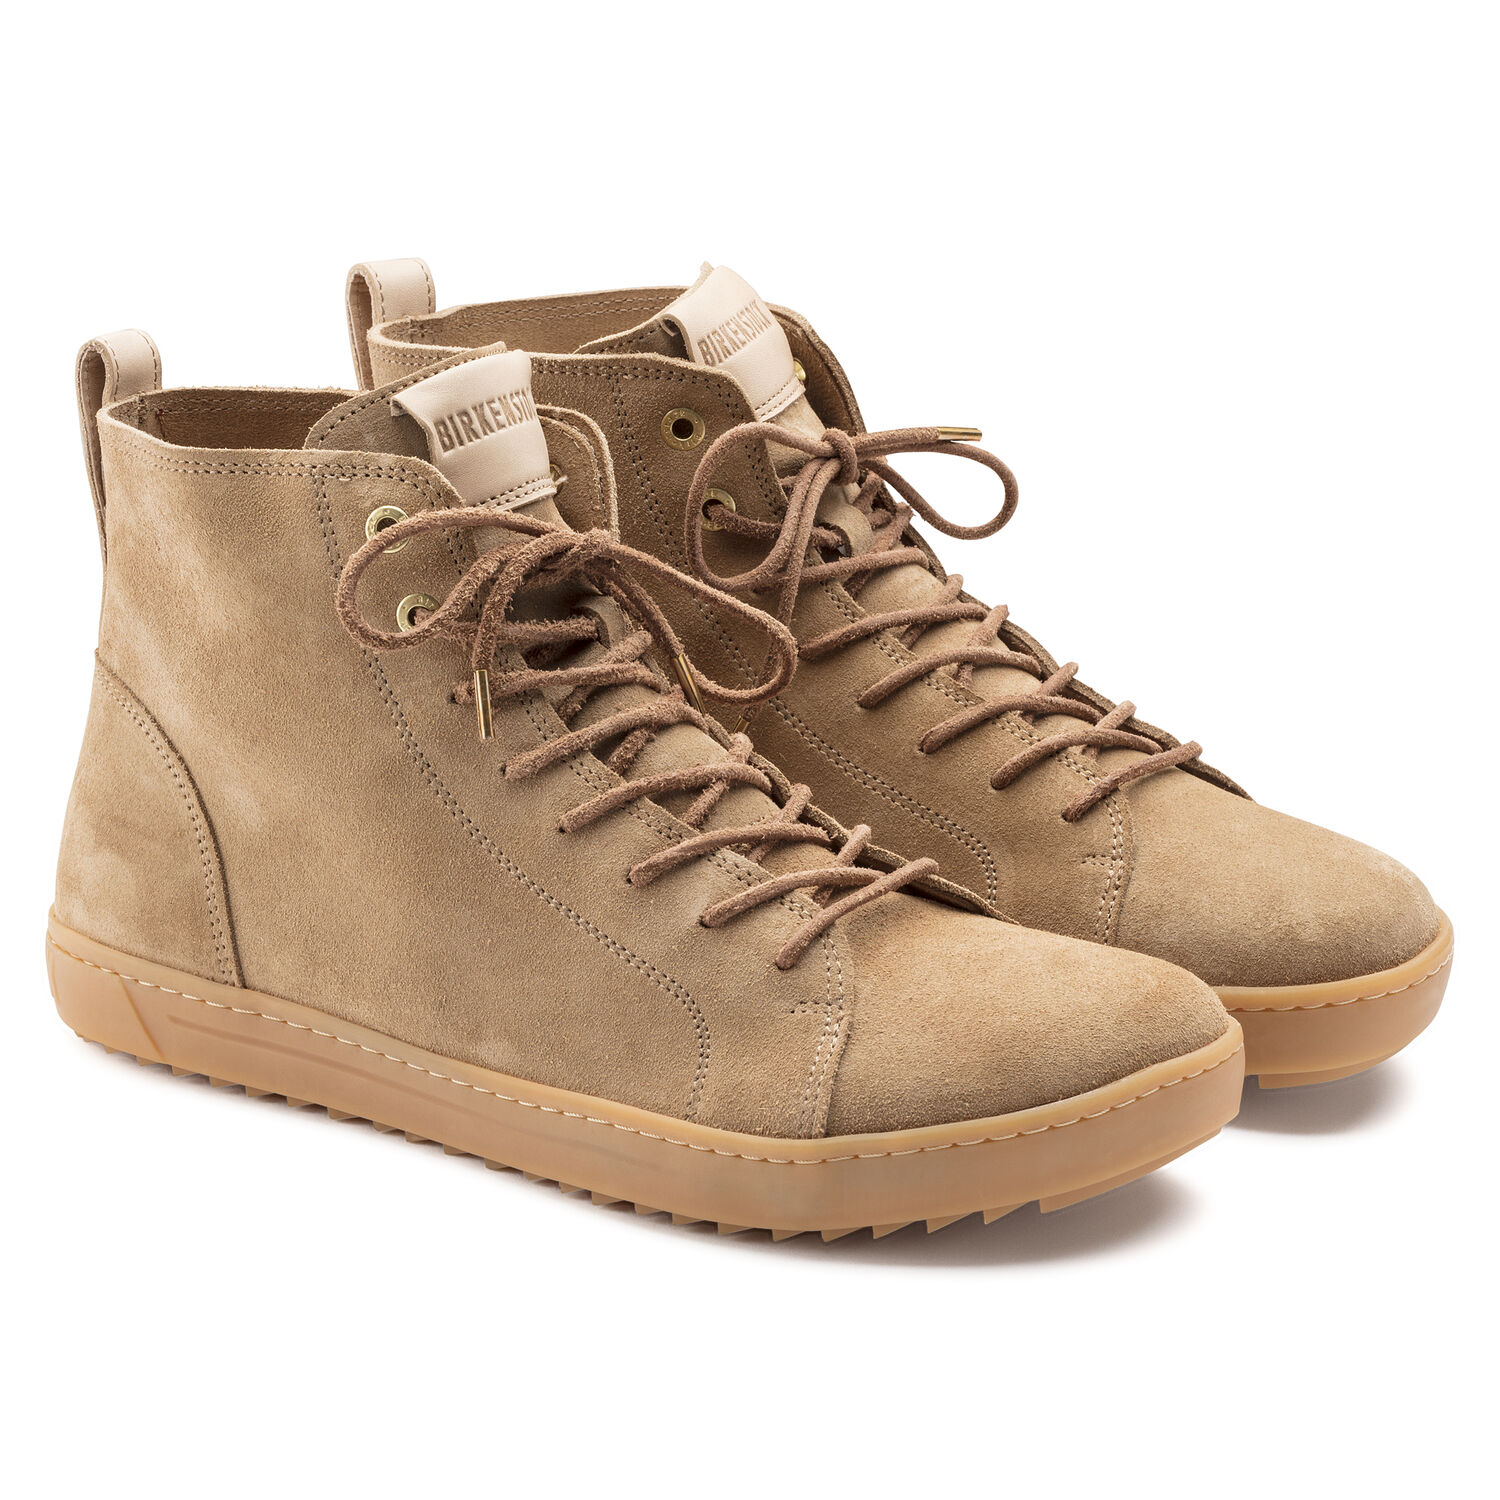 Bartlett Suede Leather